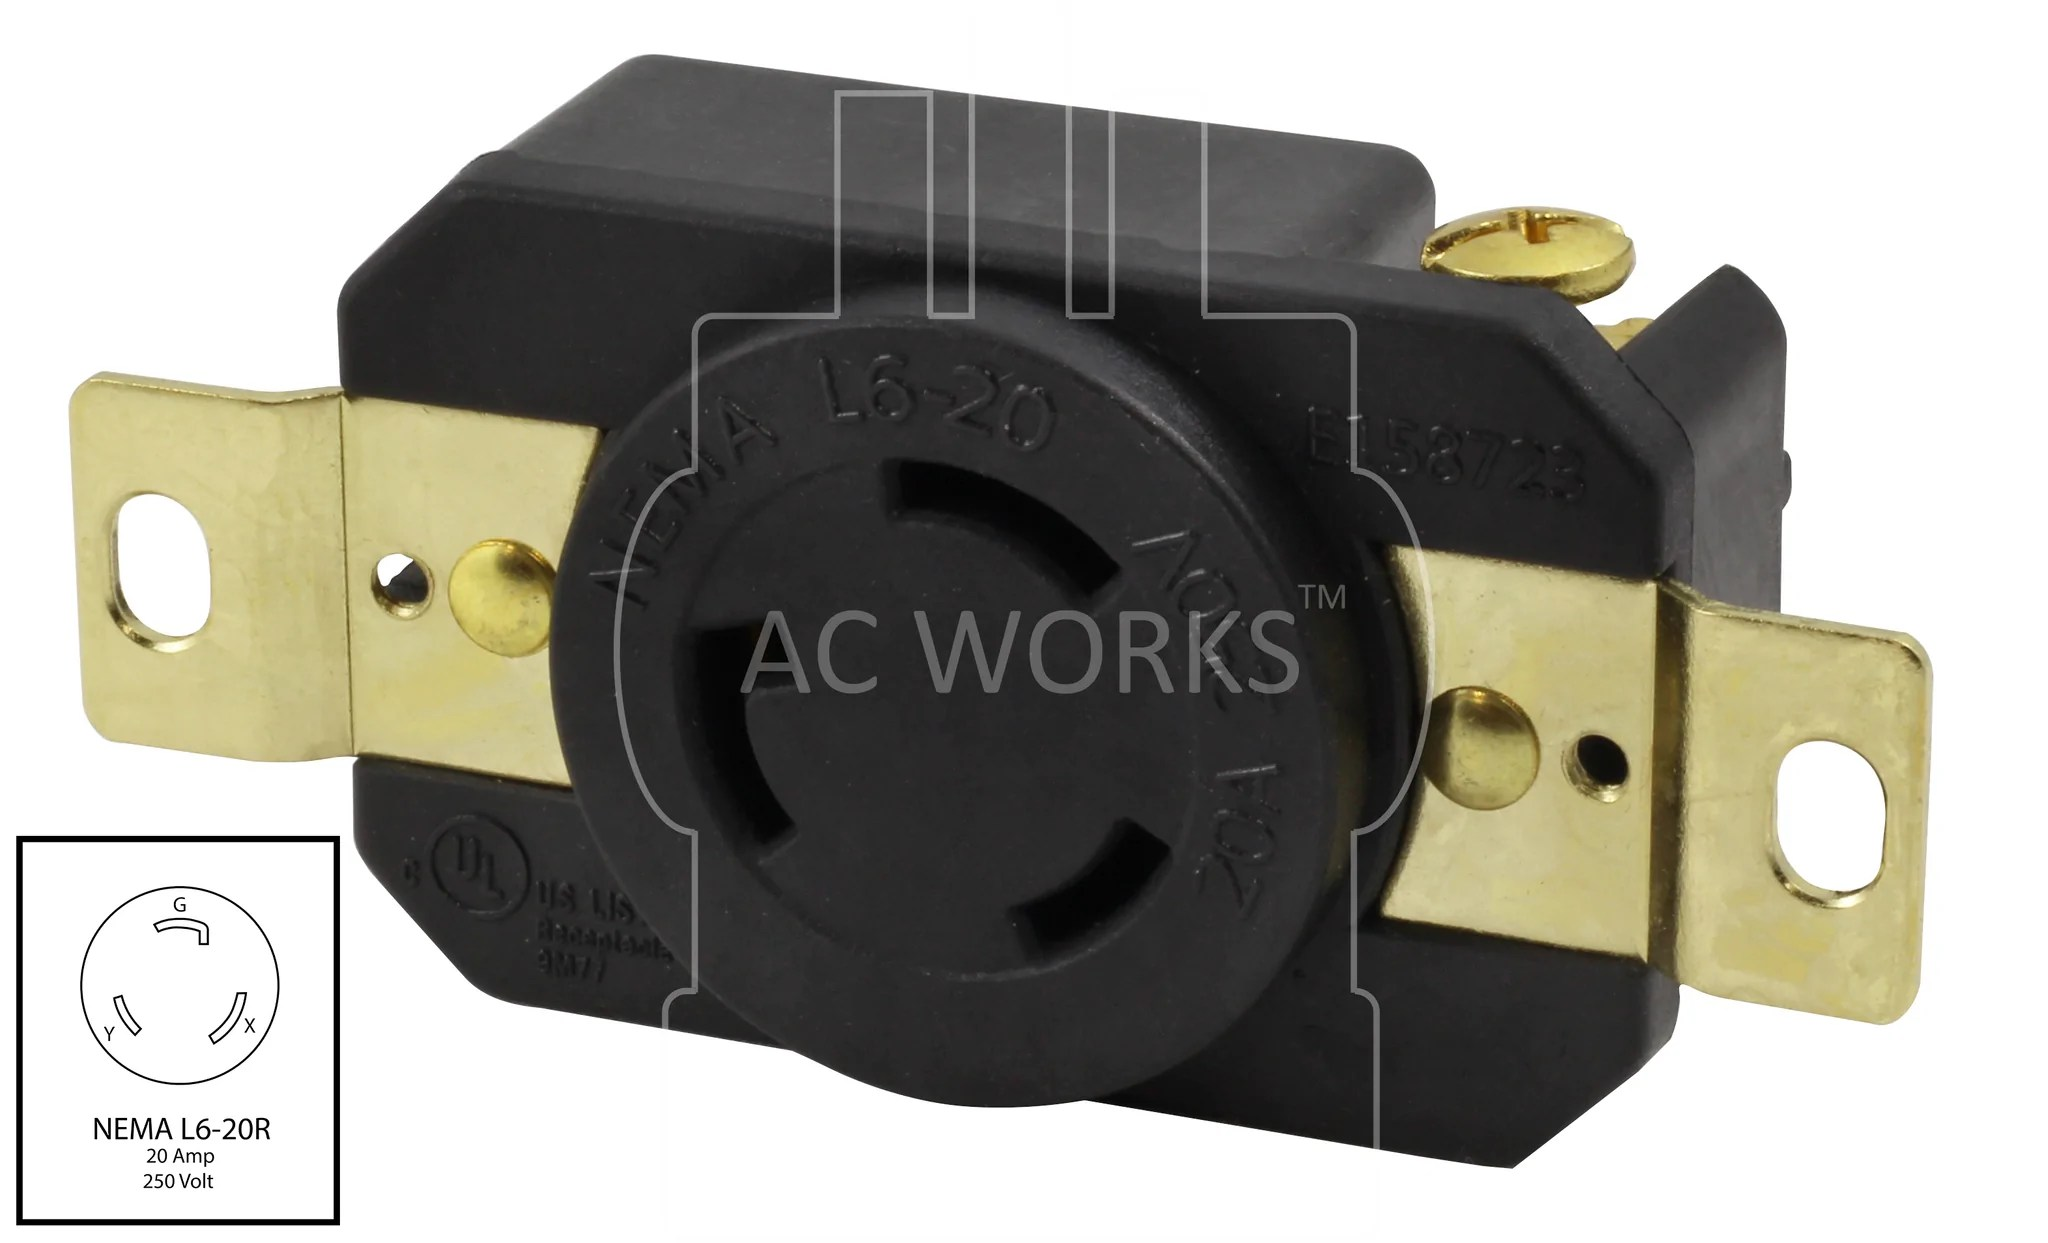 medium resolution of  ac works nema l6 20r l620 receptacle l620 replacement outlet diy